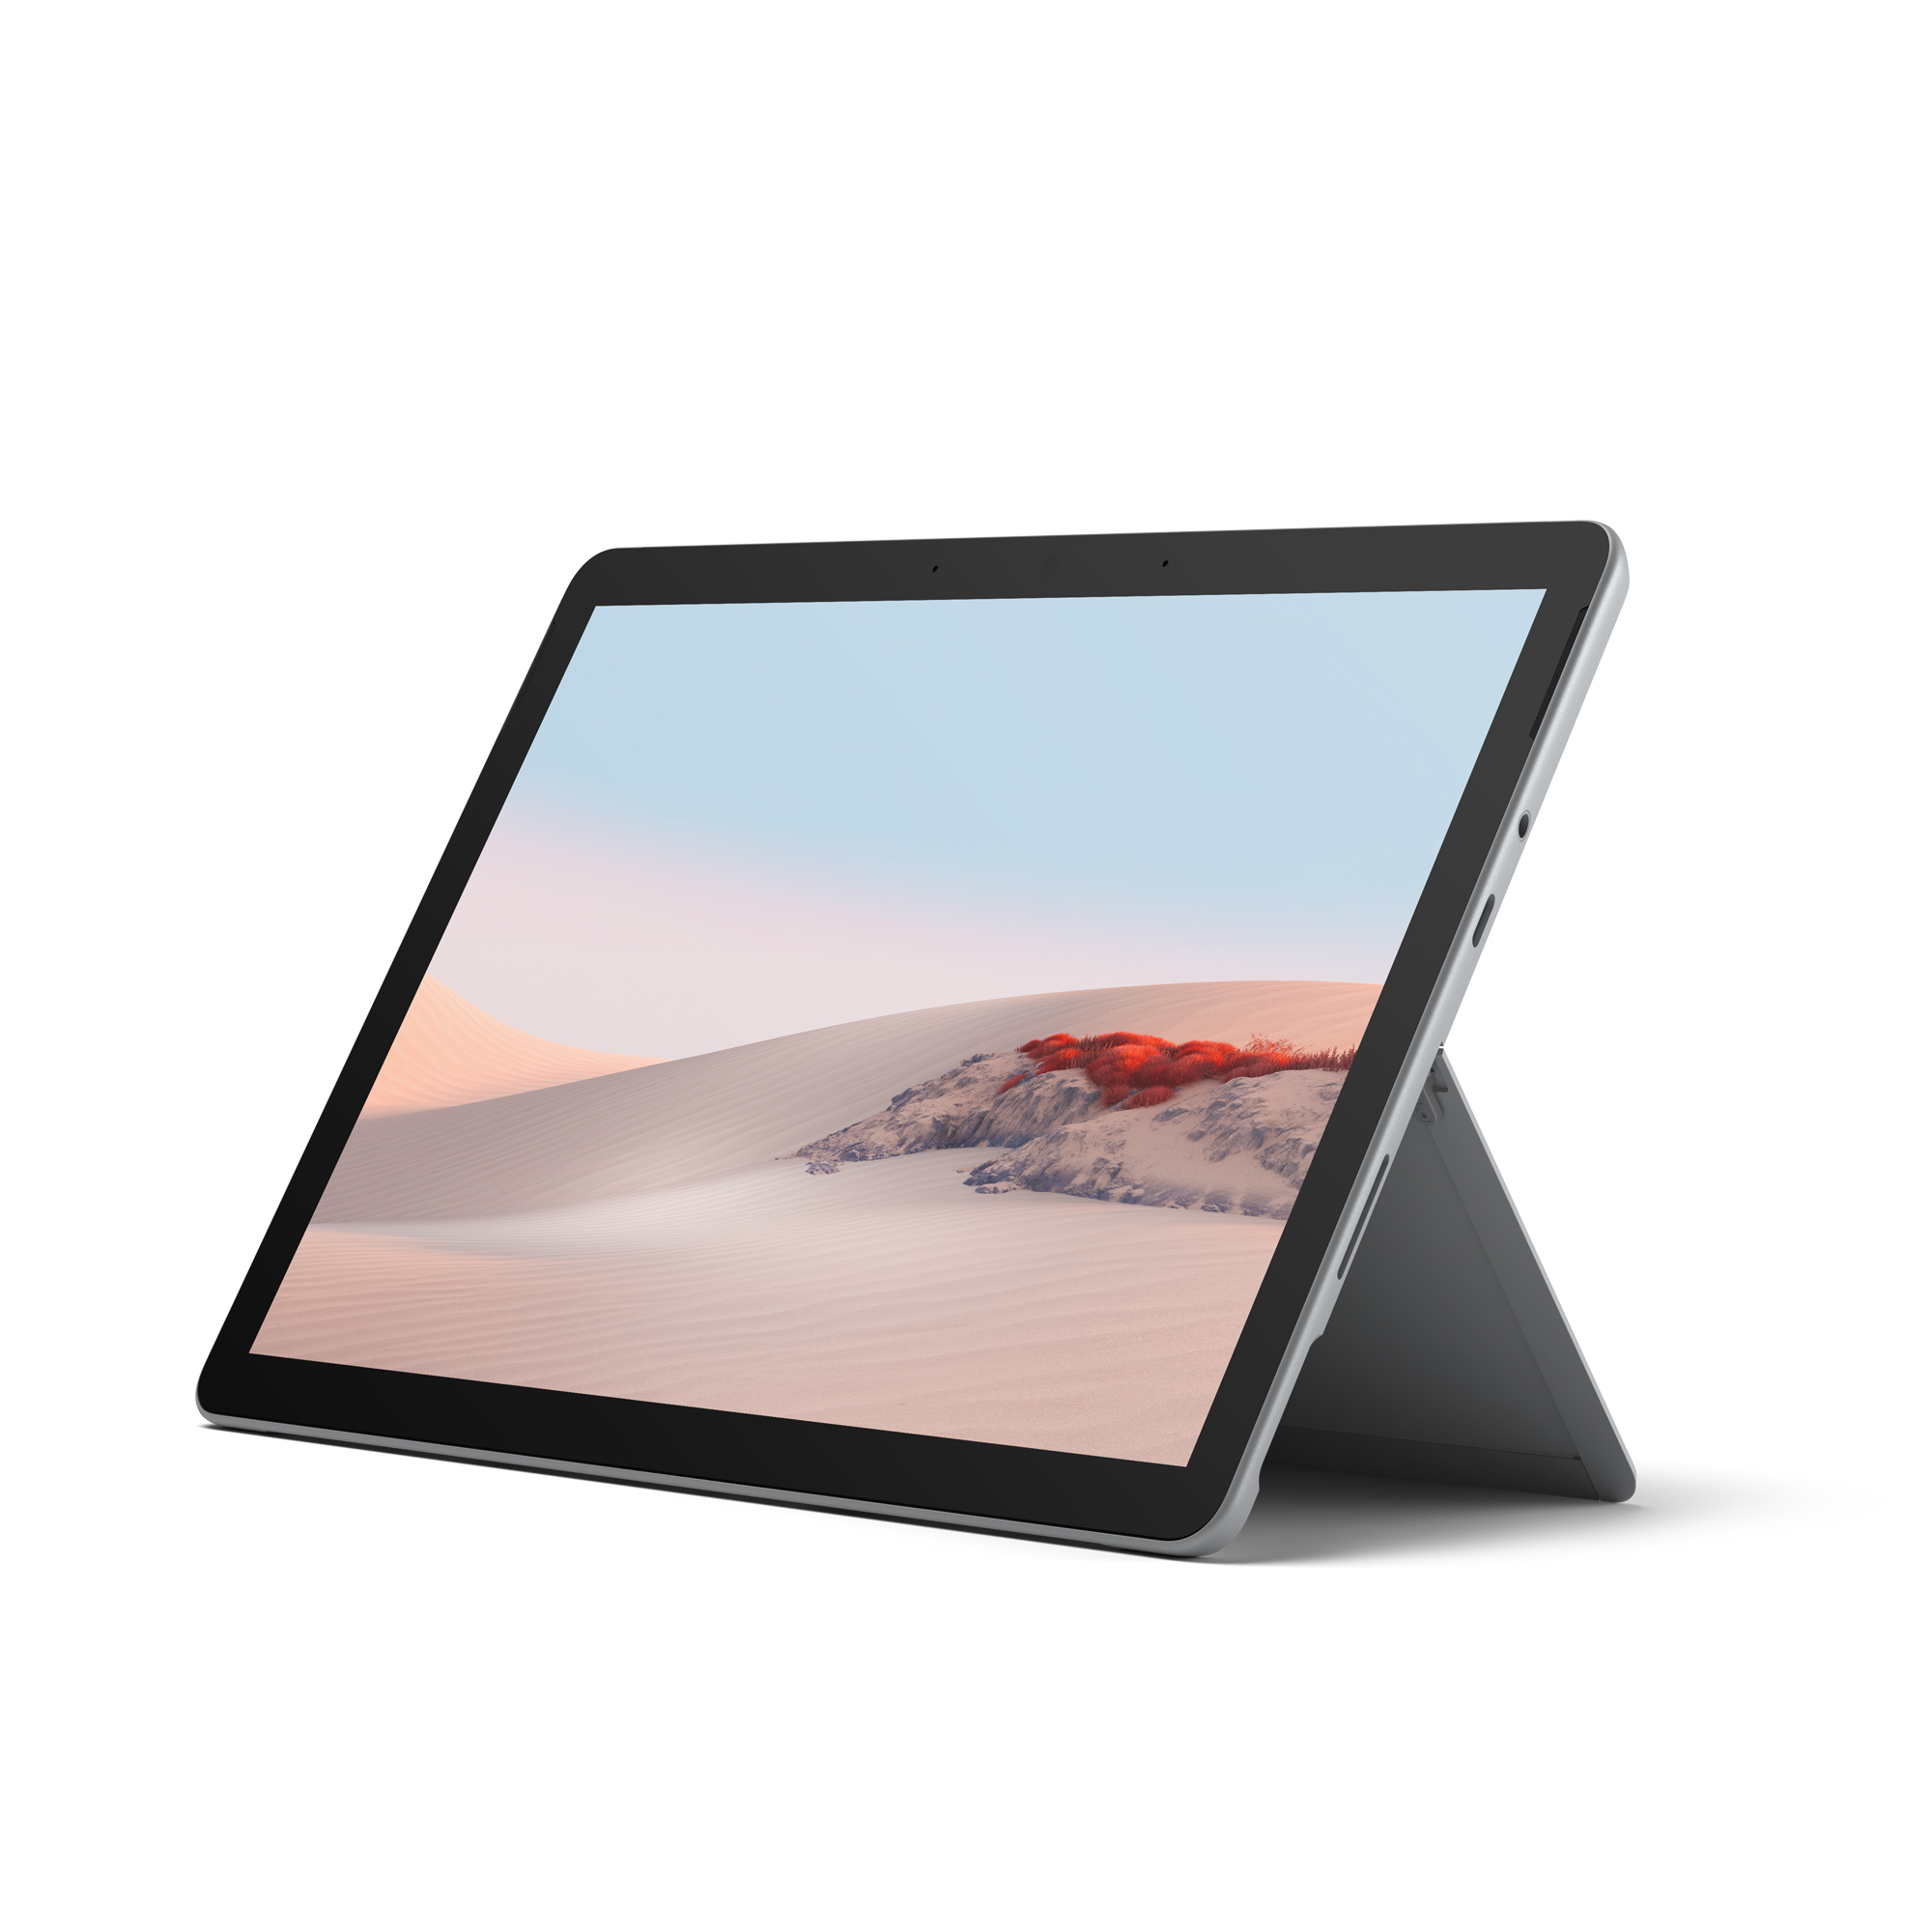 Mobile Preview: Microsoft Surface Go 2 - Tablet - Core m3 8100Y / 1.1 GHz - Win 10 Home in S mode - 8 GB RAM - 128 GB SSD - 26.7 cm (10.